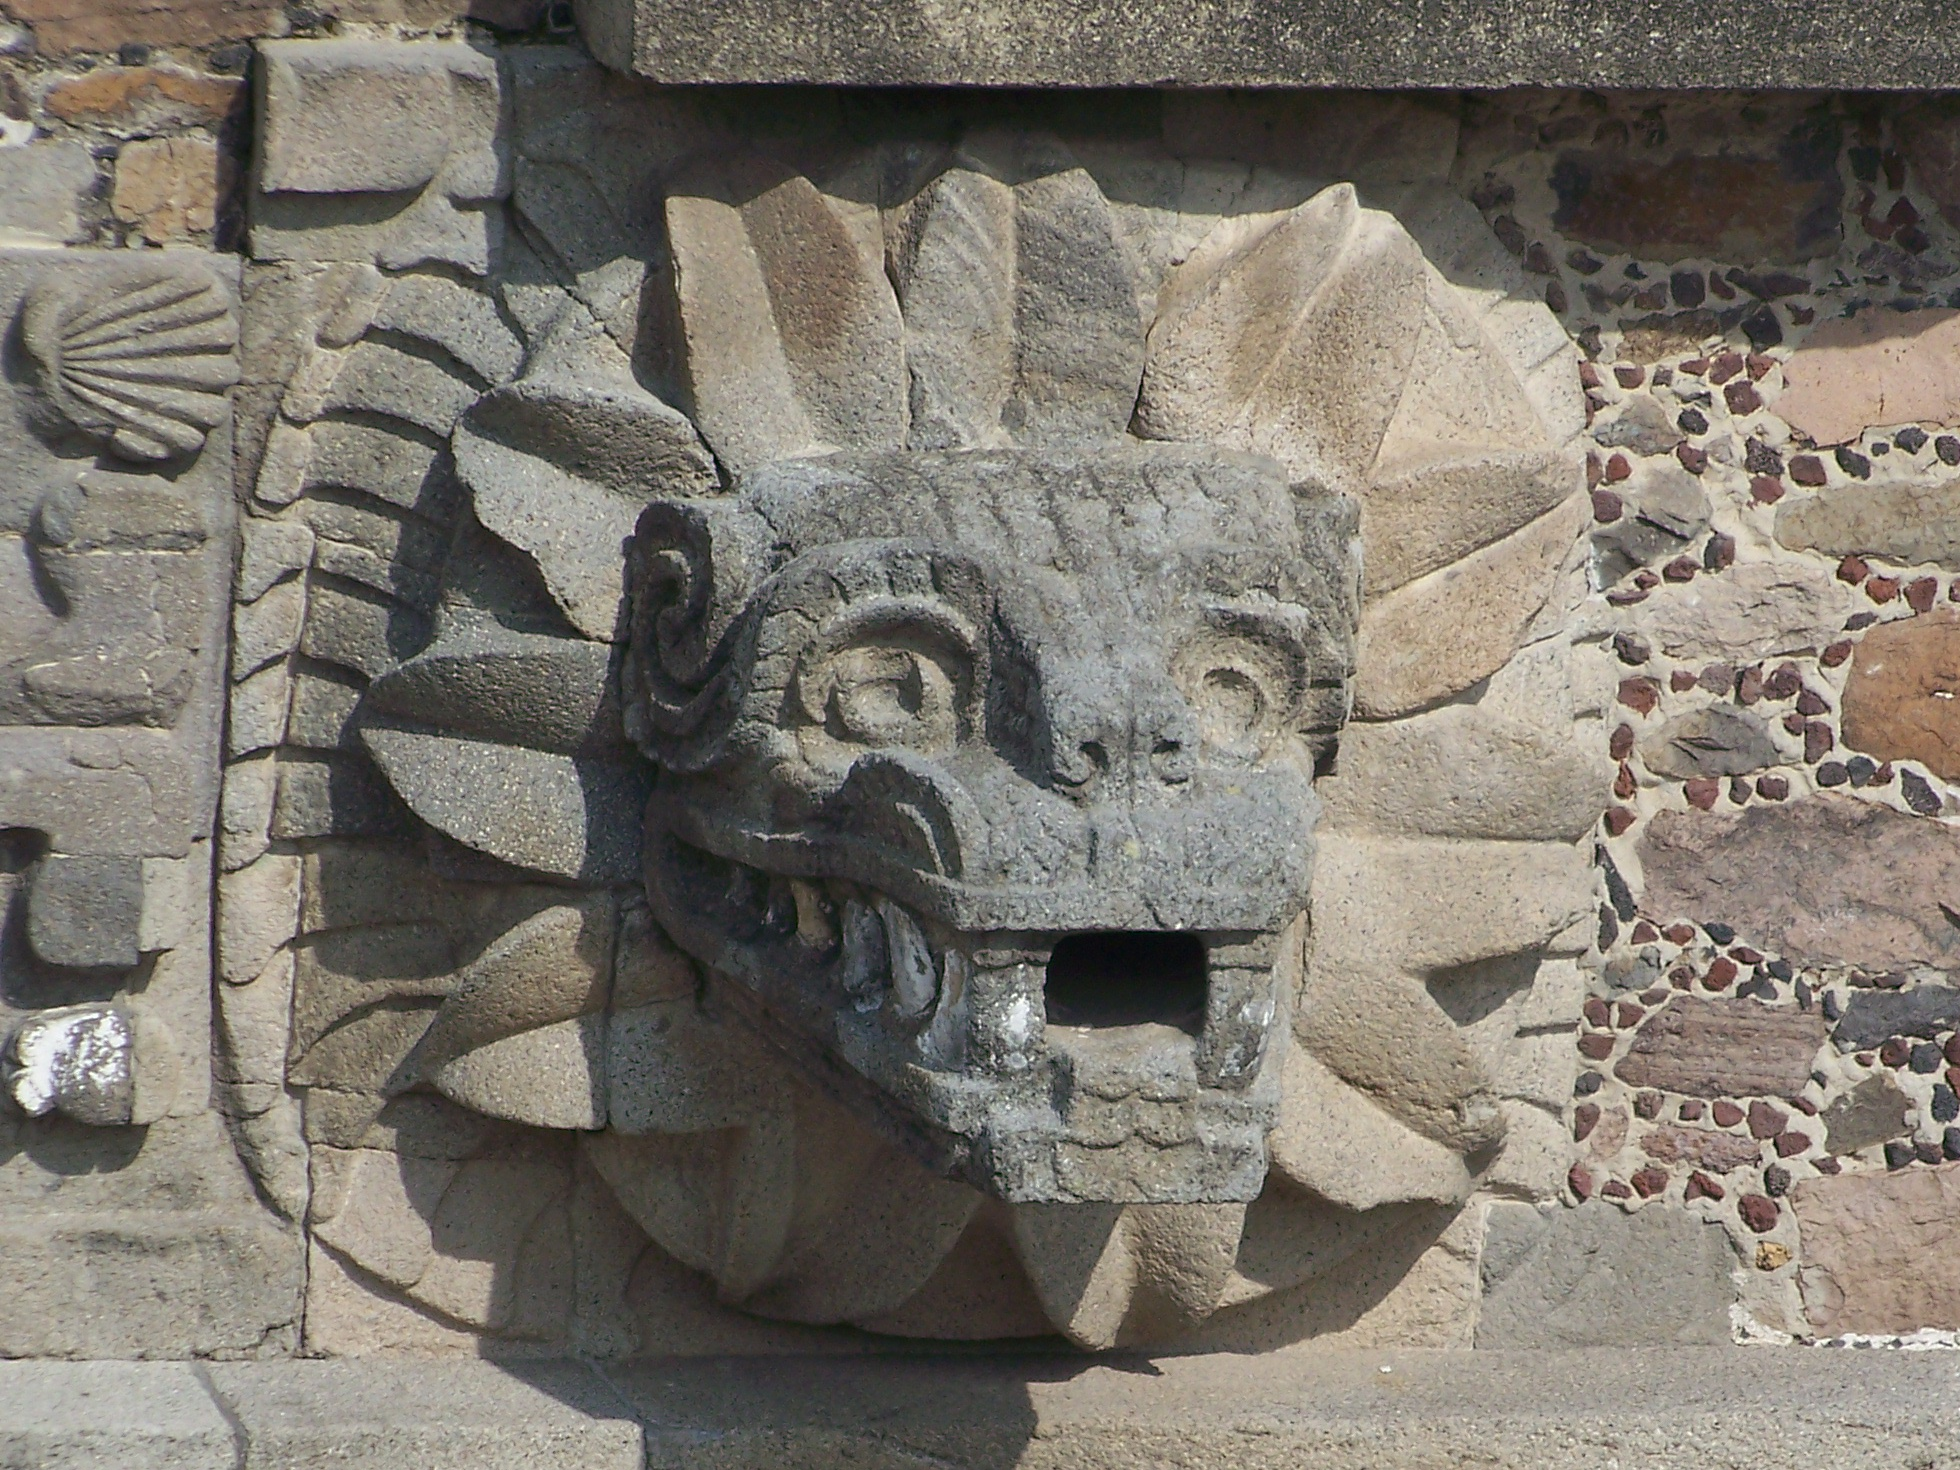 http://upload.wikimedia.org/wikipedia/commons/0/0f/Teotihuacan_Feathered_Serpent_(Jami_Dwyer).jpg